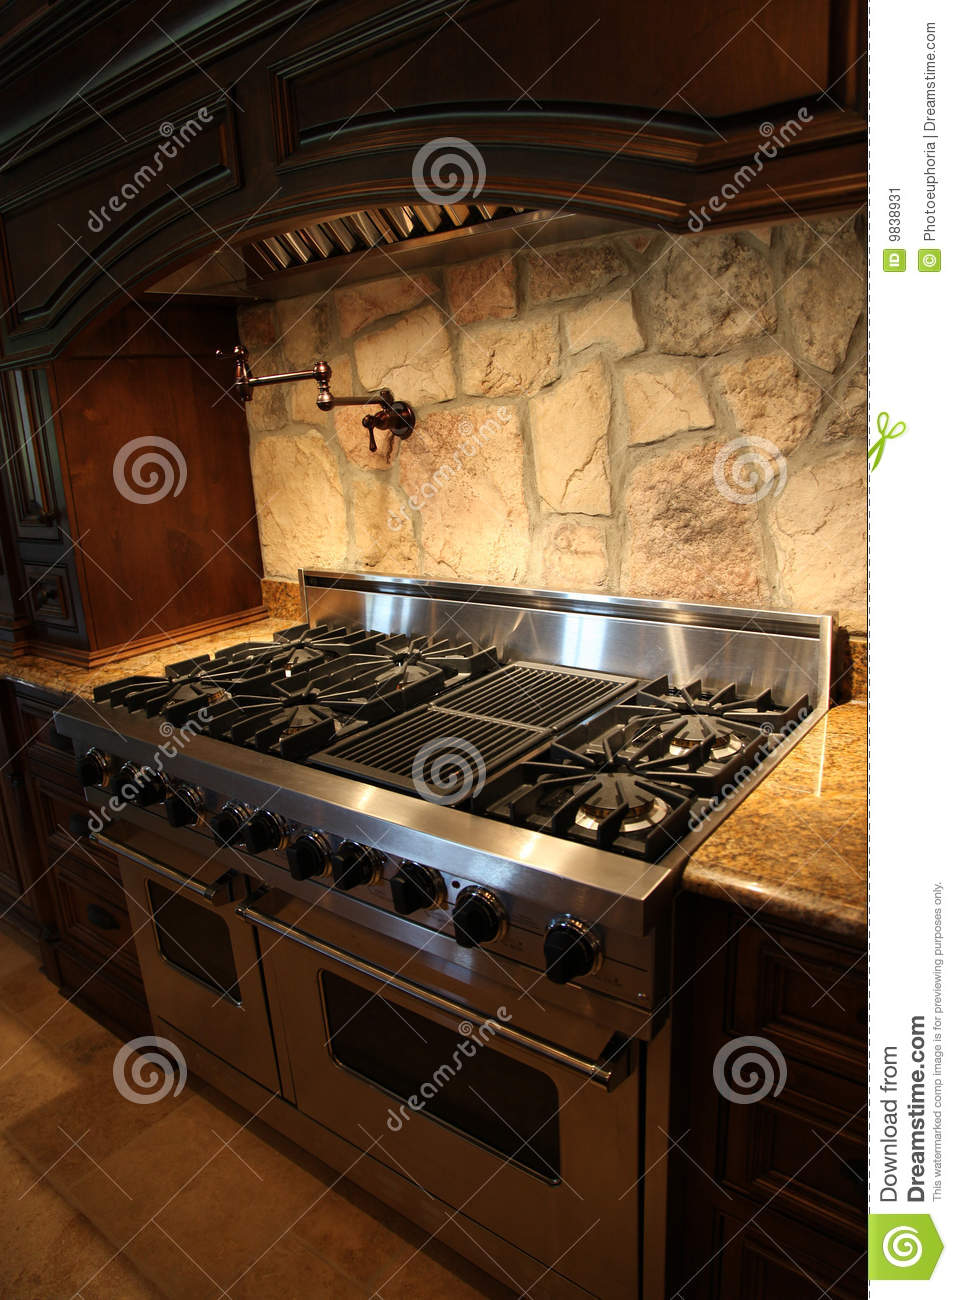 tennesee home gas stainless steel stove and oven